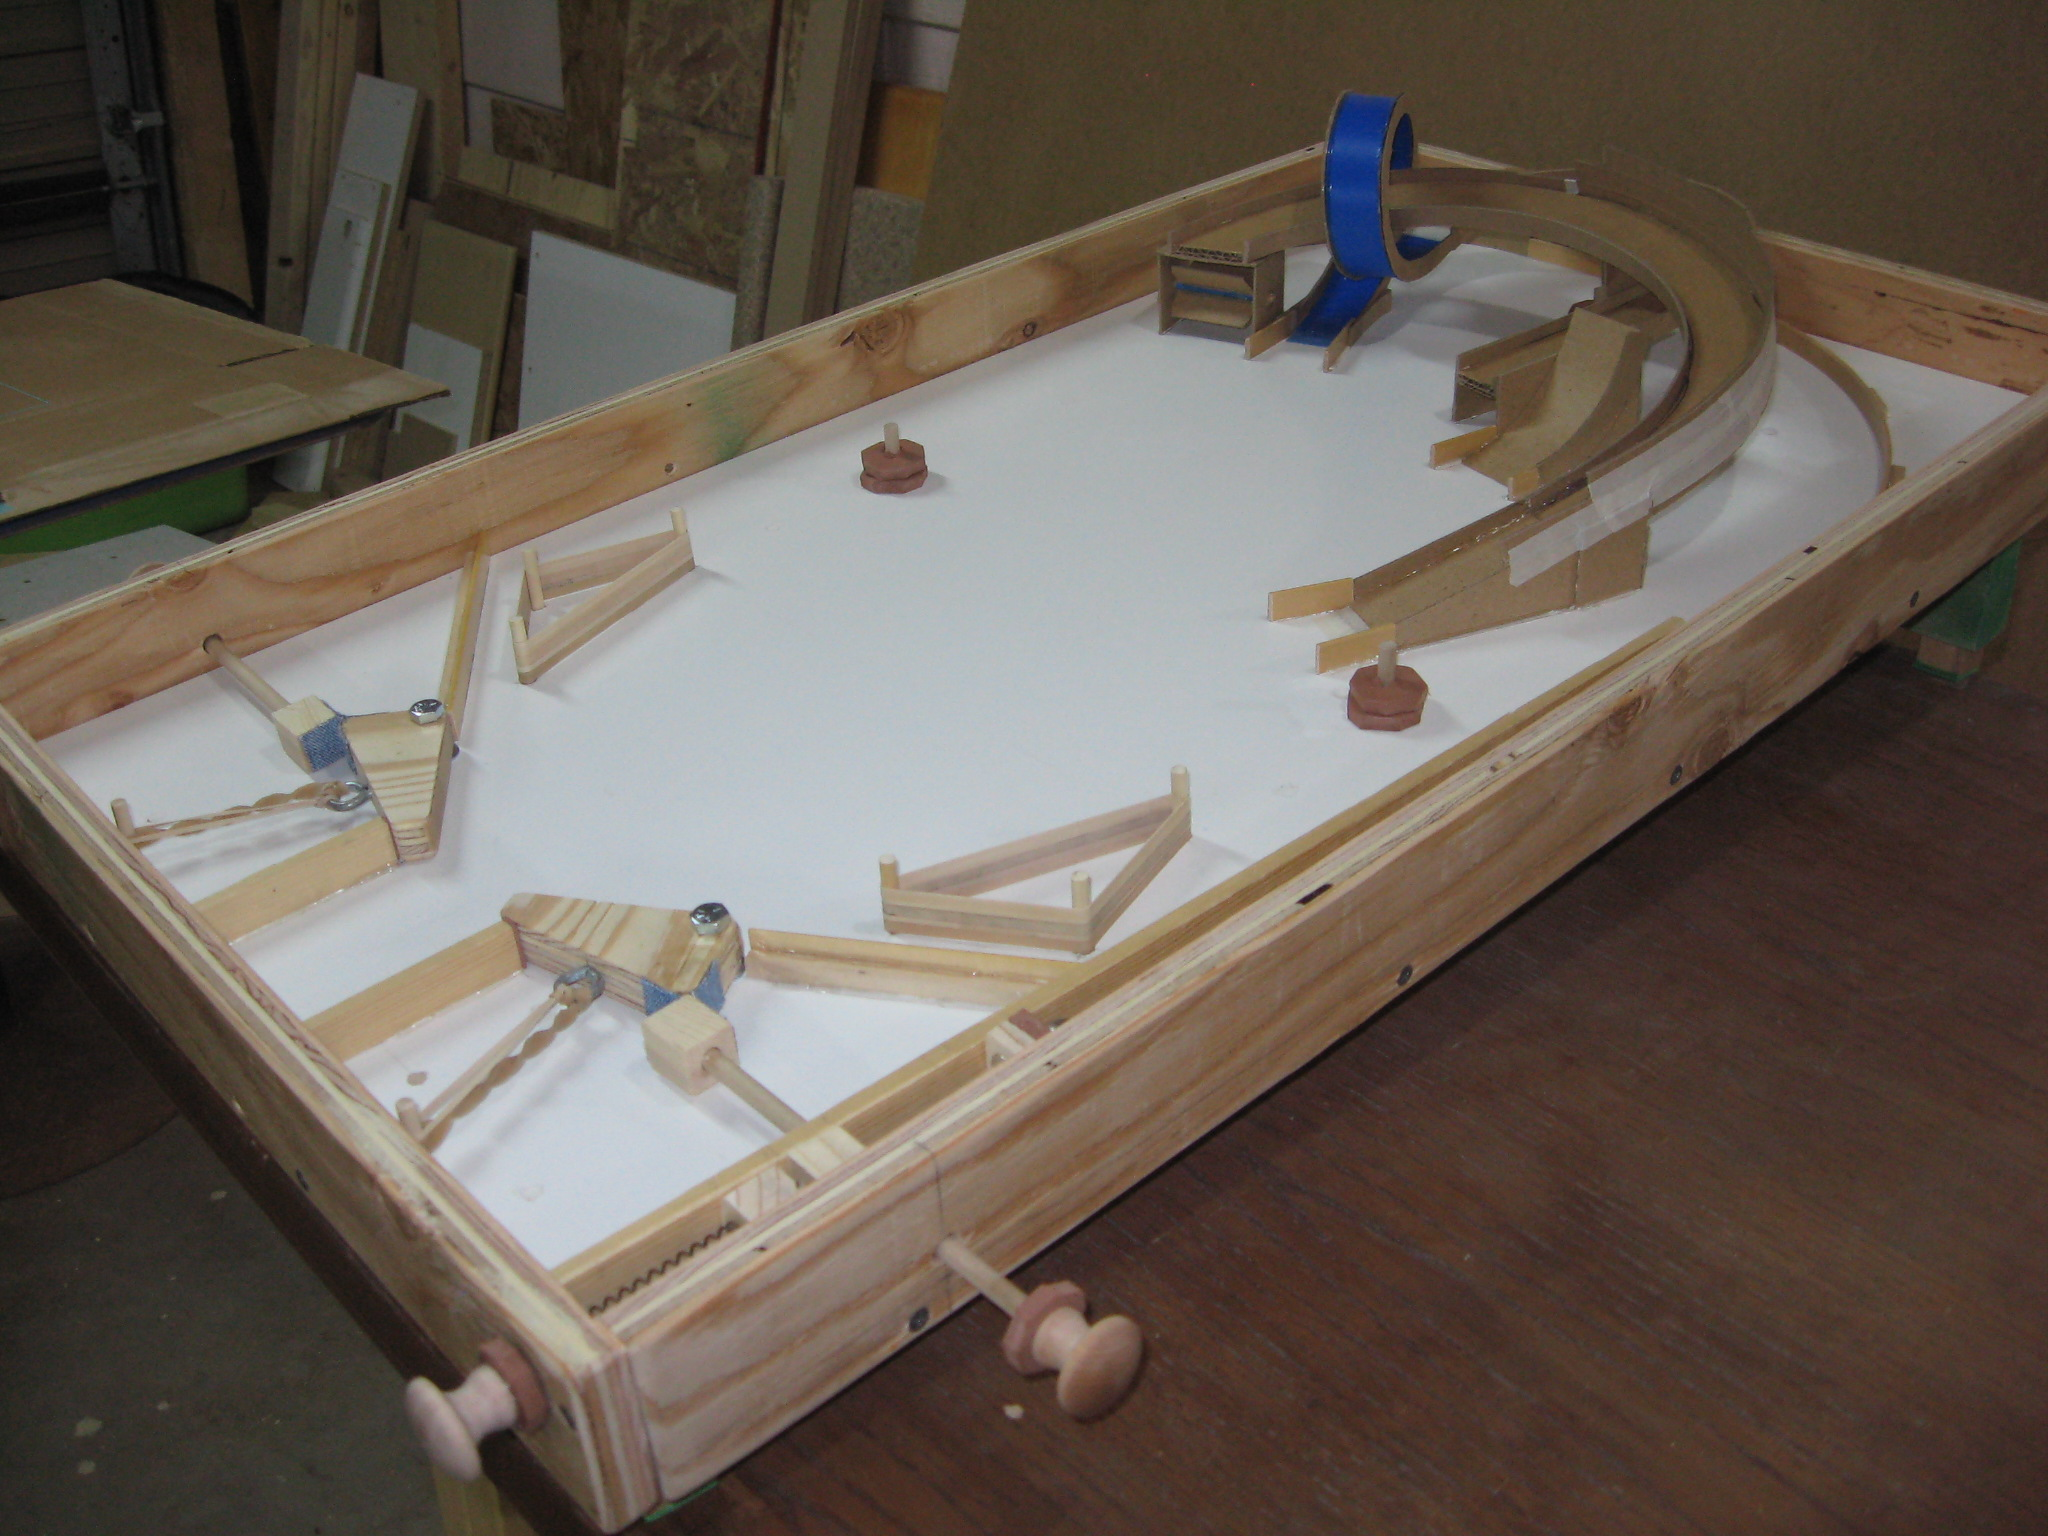 Picture of Tabletop Pinball